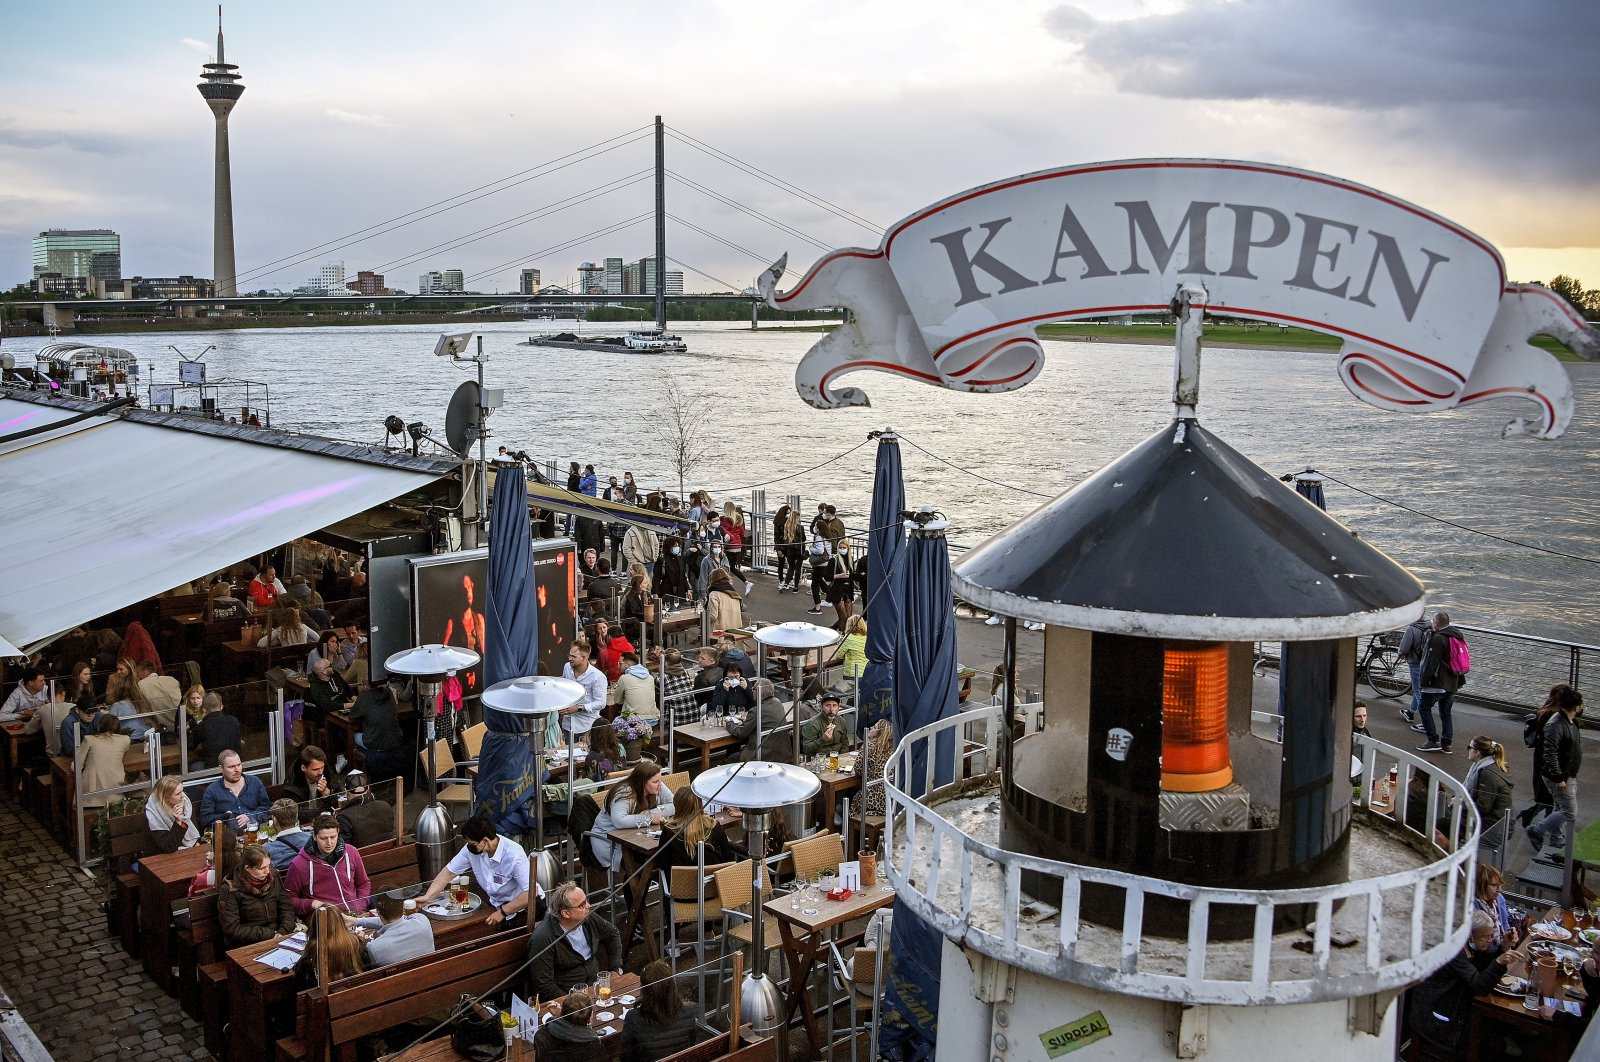 People stroll along the casemates on the banks of the Rhine in Duesseldorf, Germany, May 21, 2021. (EPA Photo)